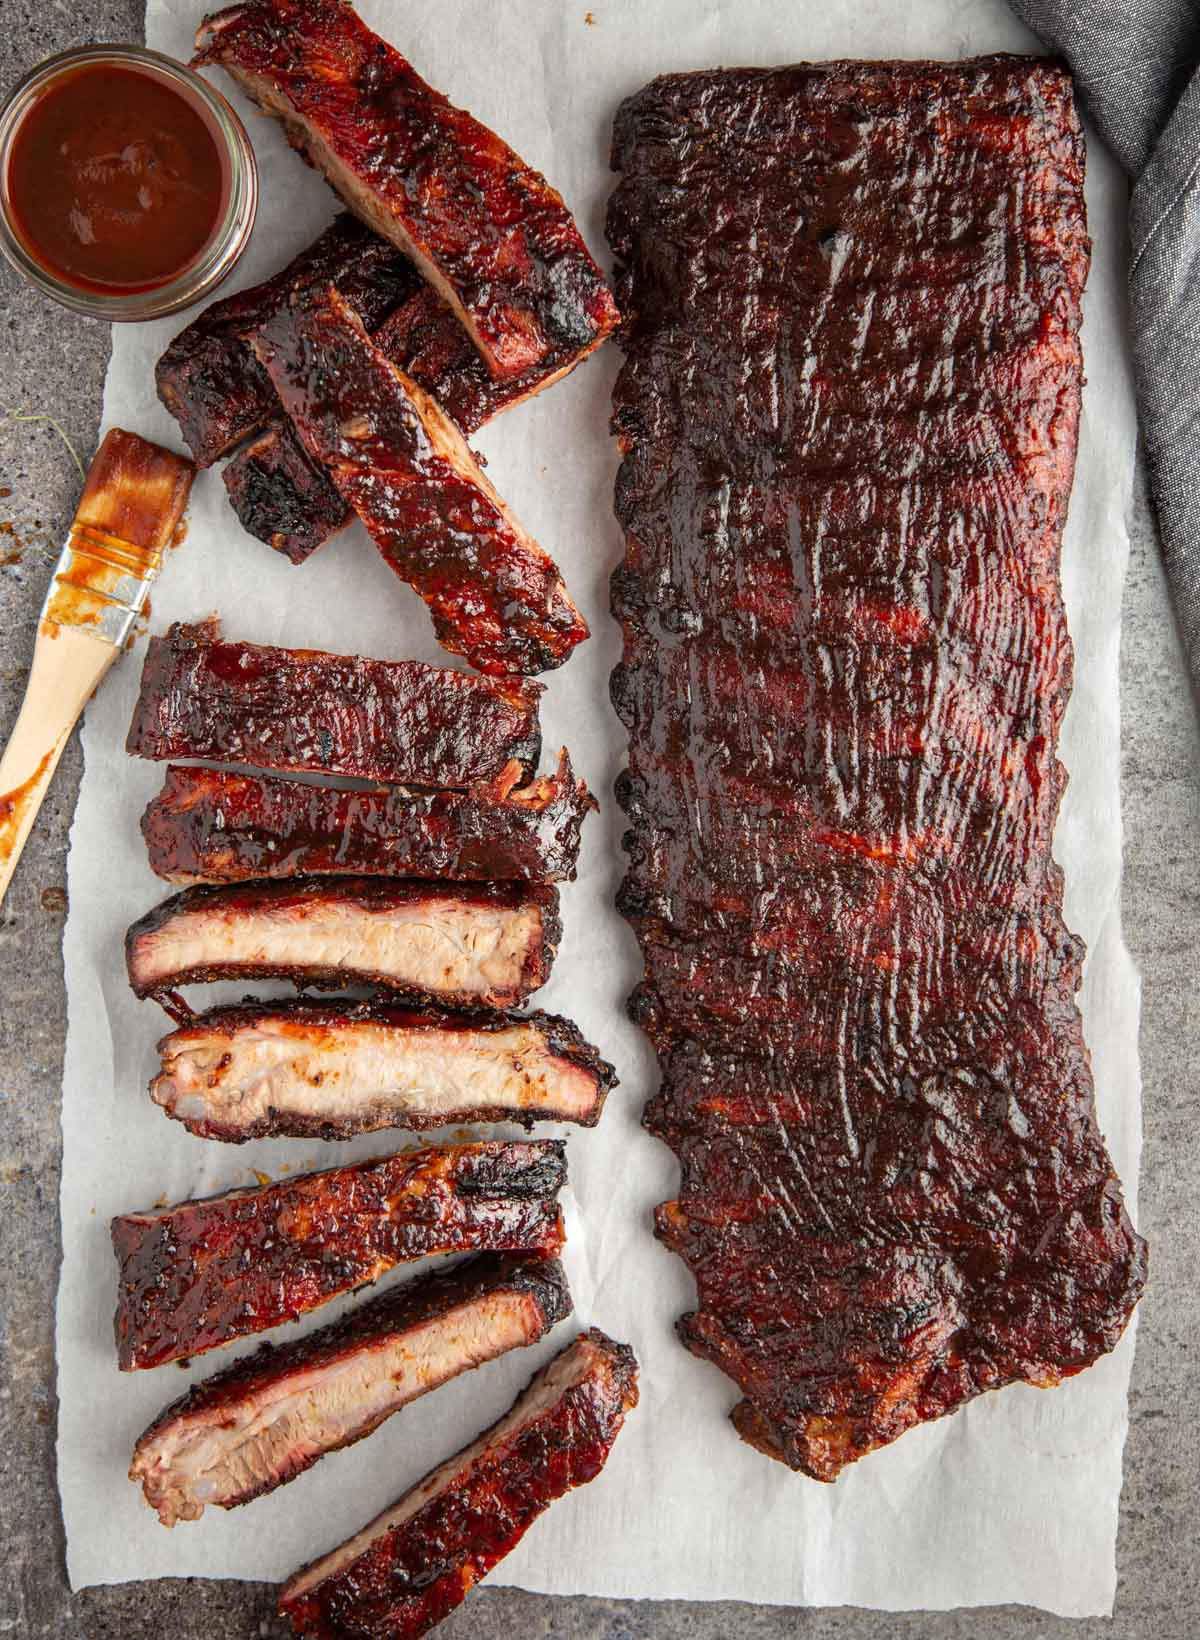 2 Racks of Pellet Grill Ribs with a Kansas City Style BBQ Sauce